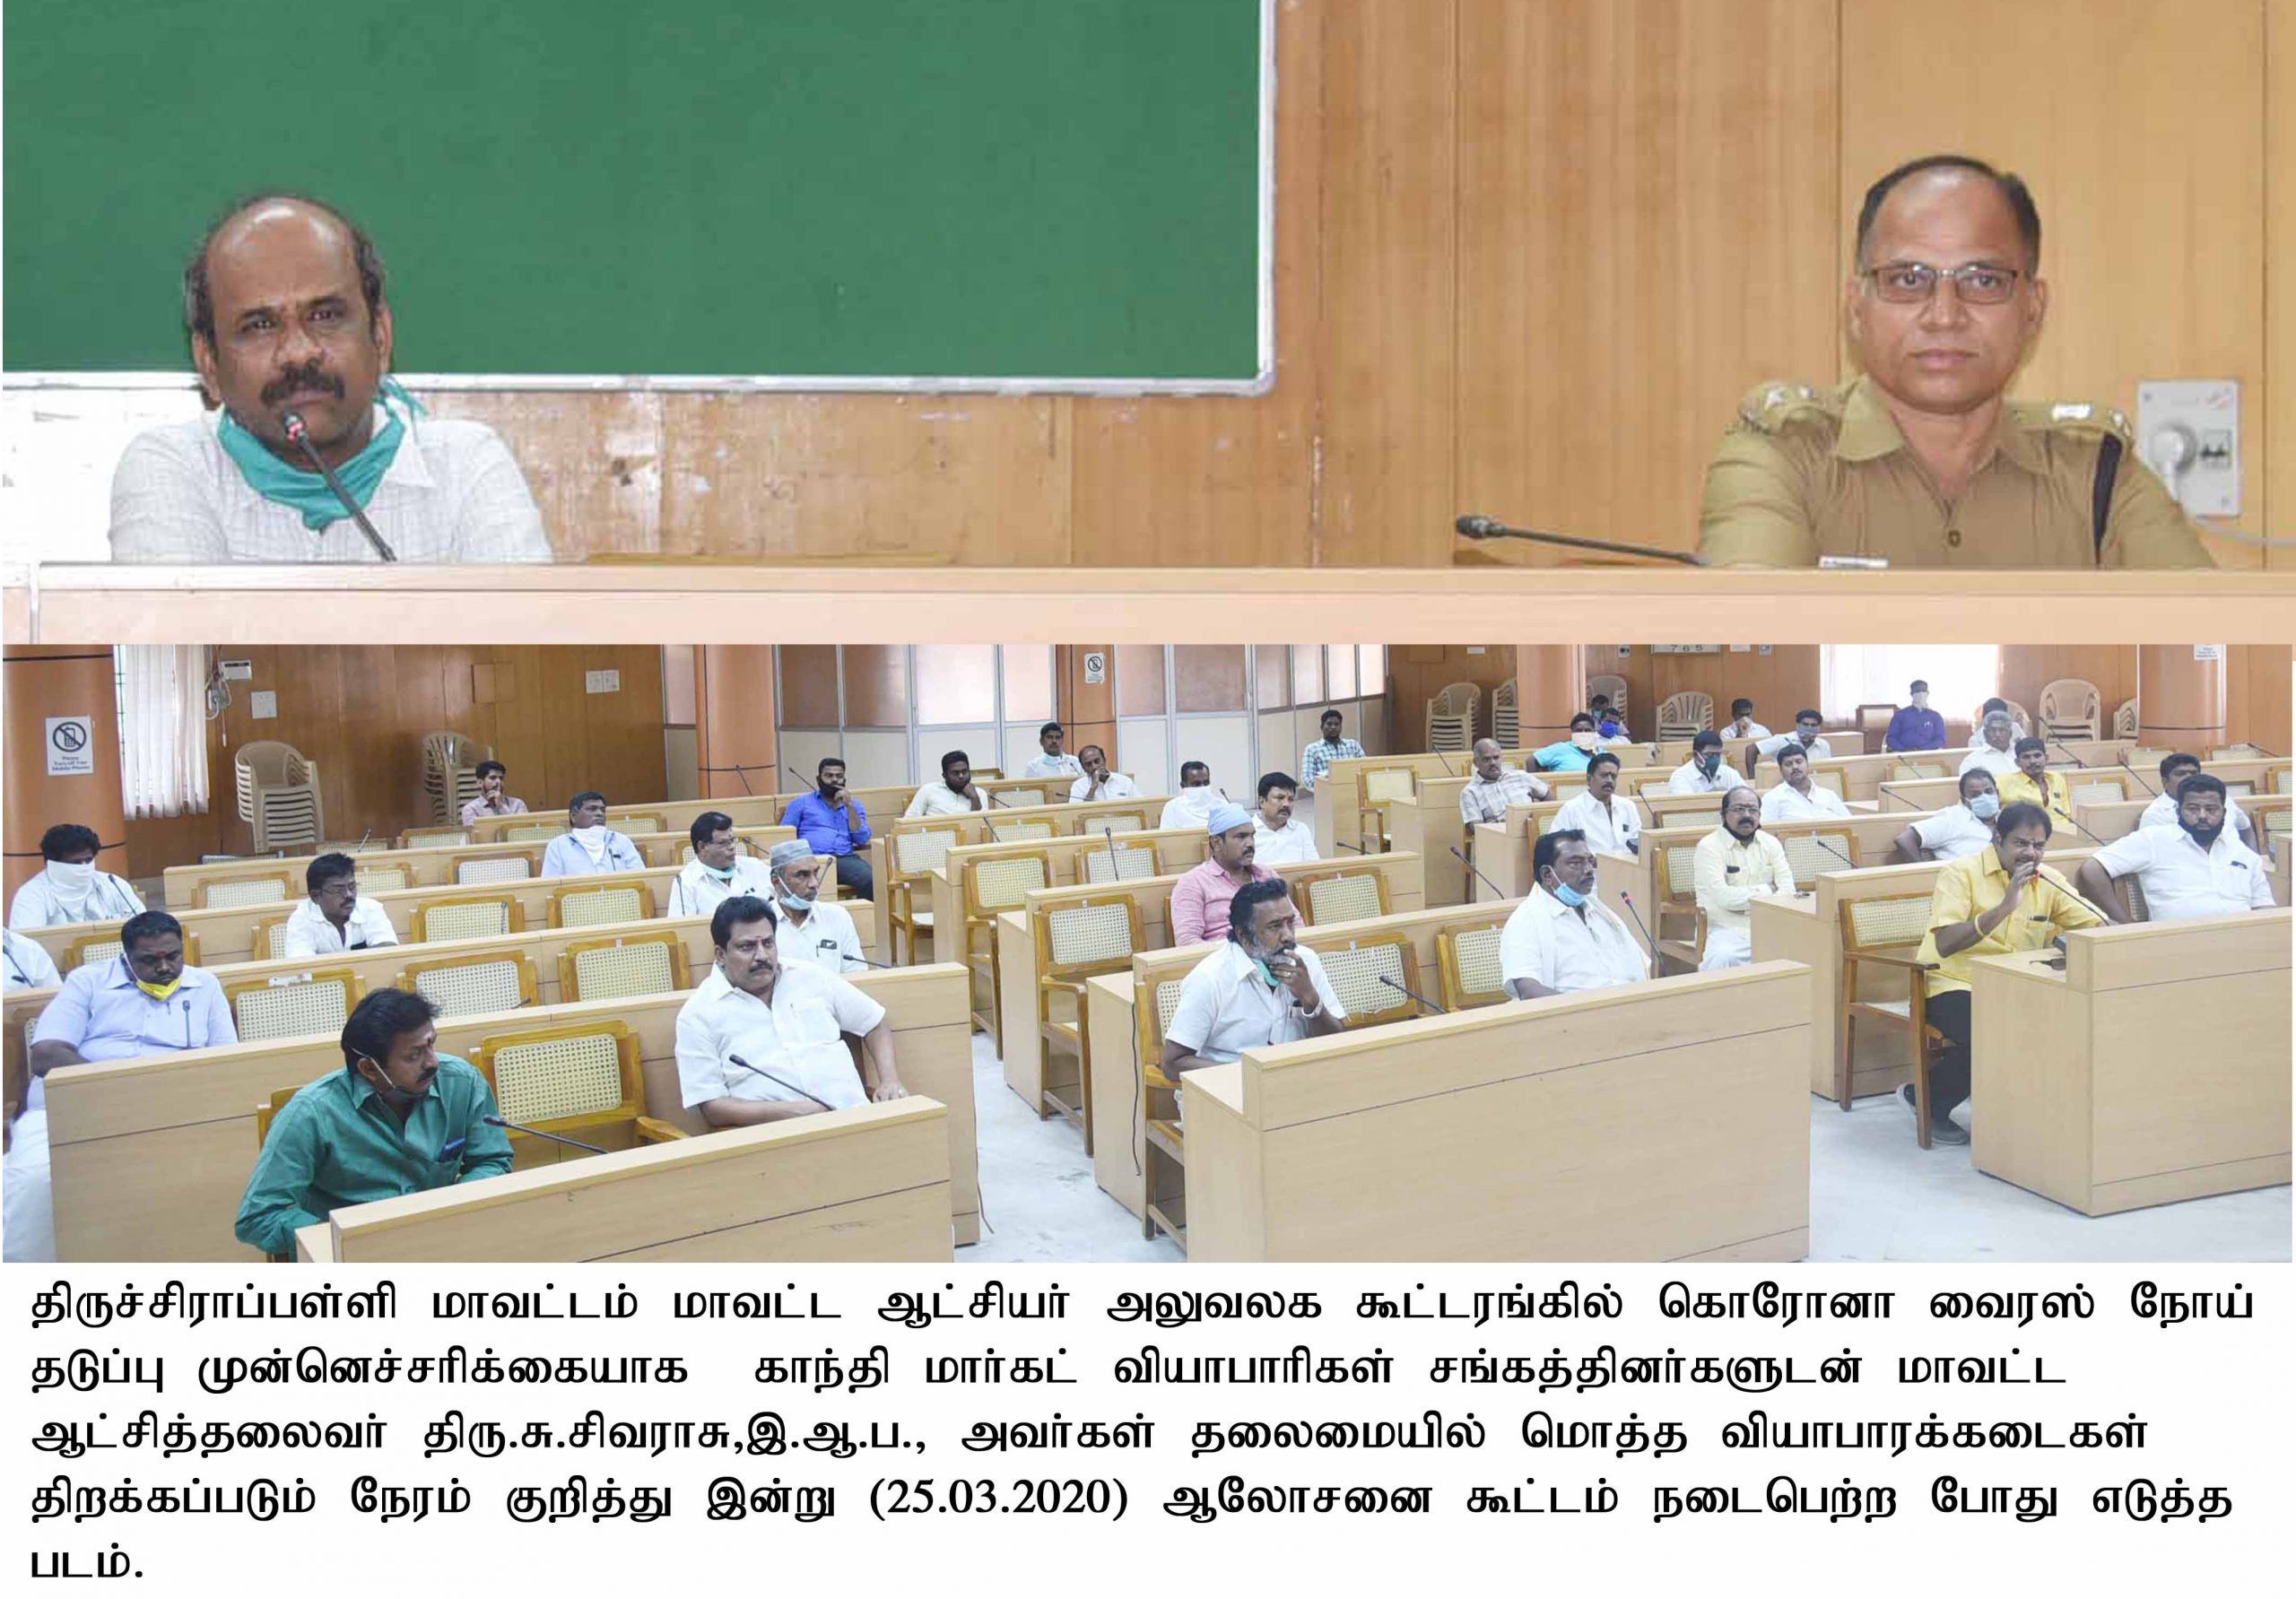 District Collector conducted Meeting with Gandhi Market Association regarding Market functioning Time Schedule